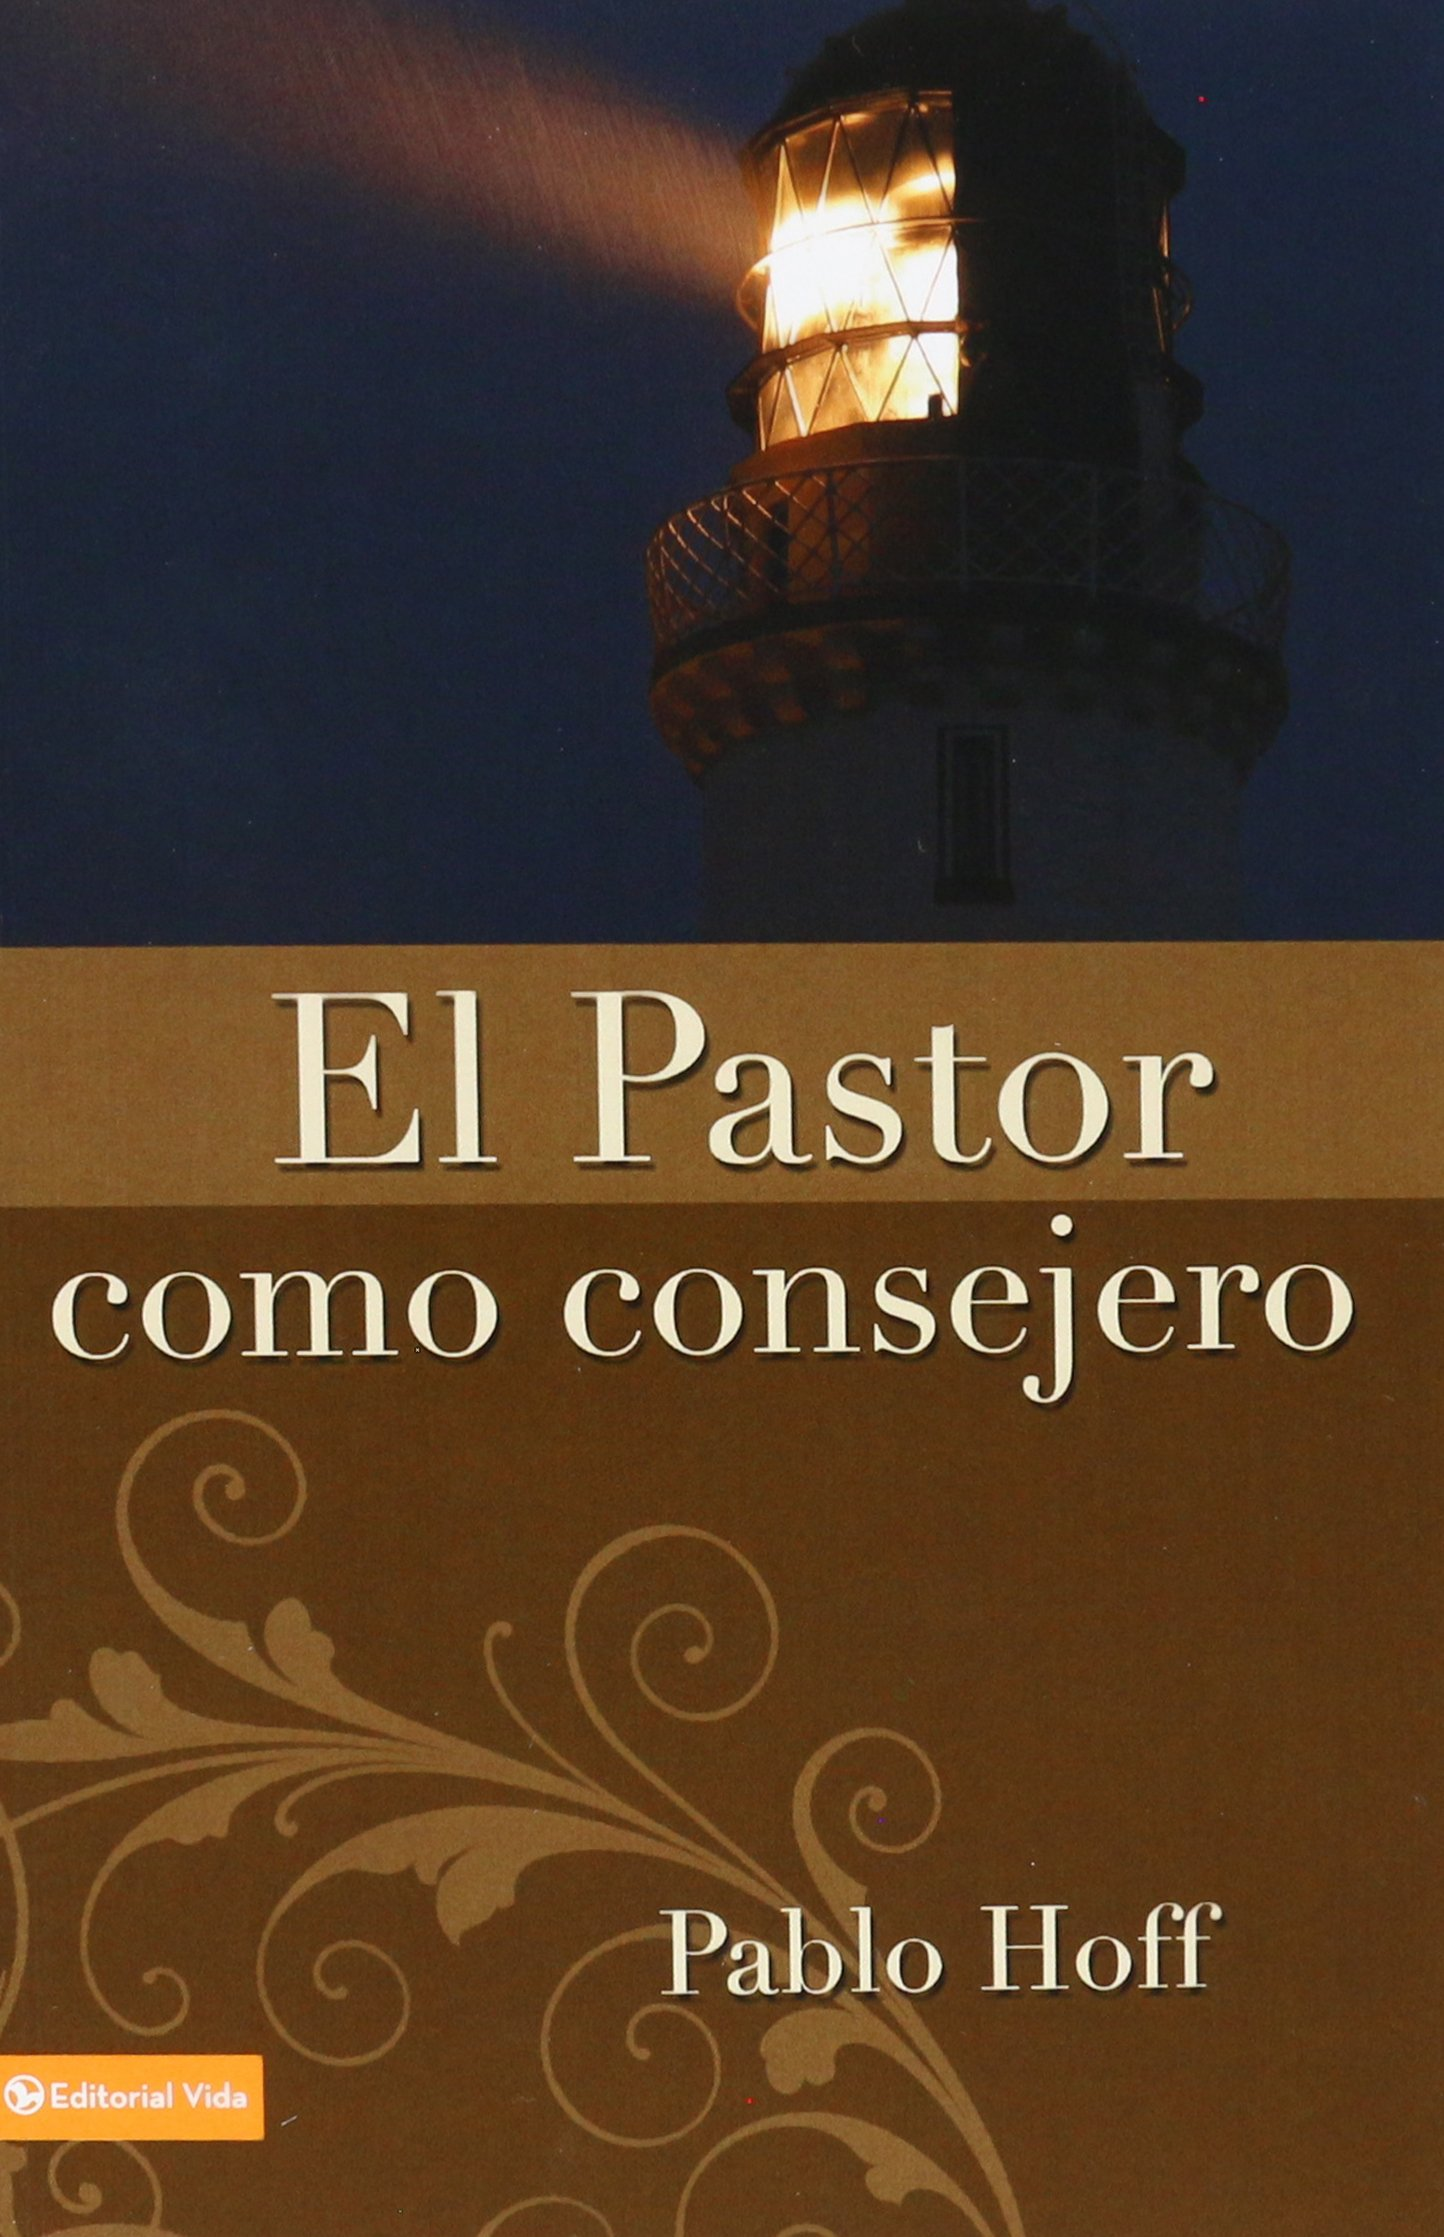 El Pastor como Consejero (Spanish Edition): Pablo Hoff: 9780829706406: Amazon.com: Books